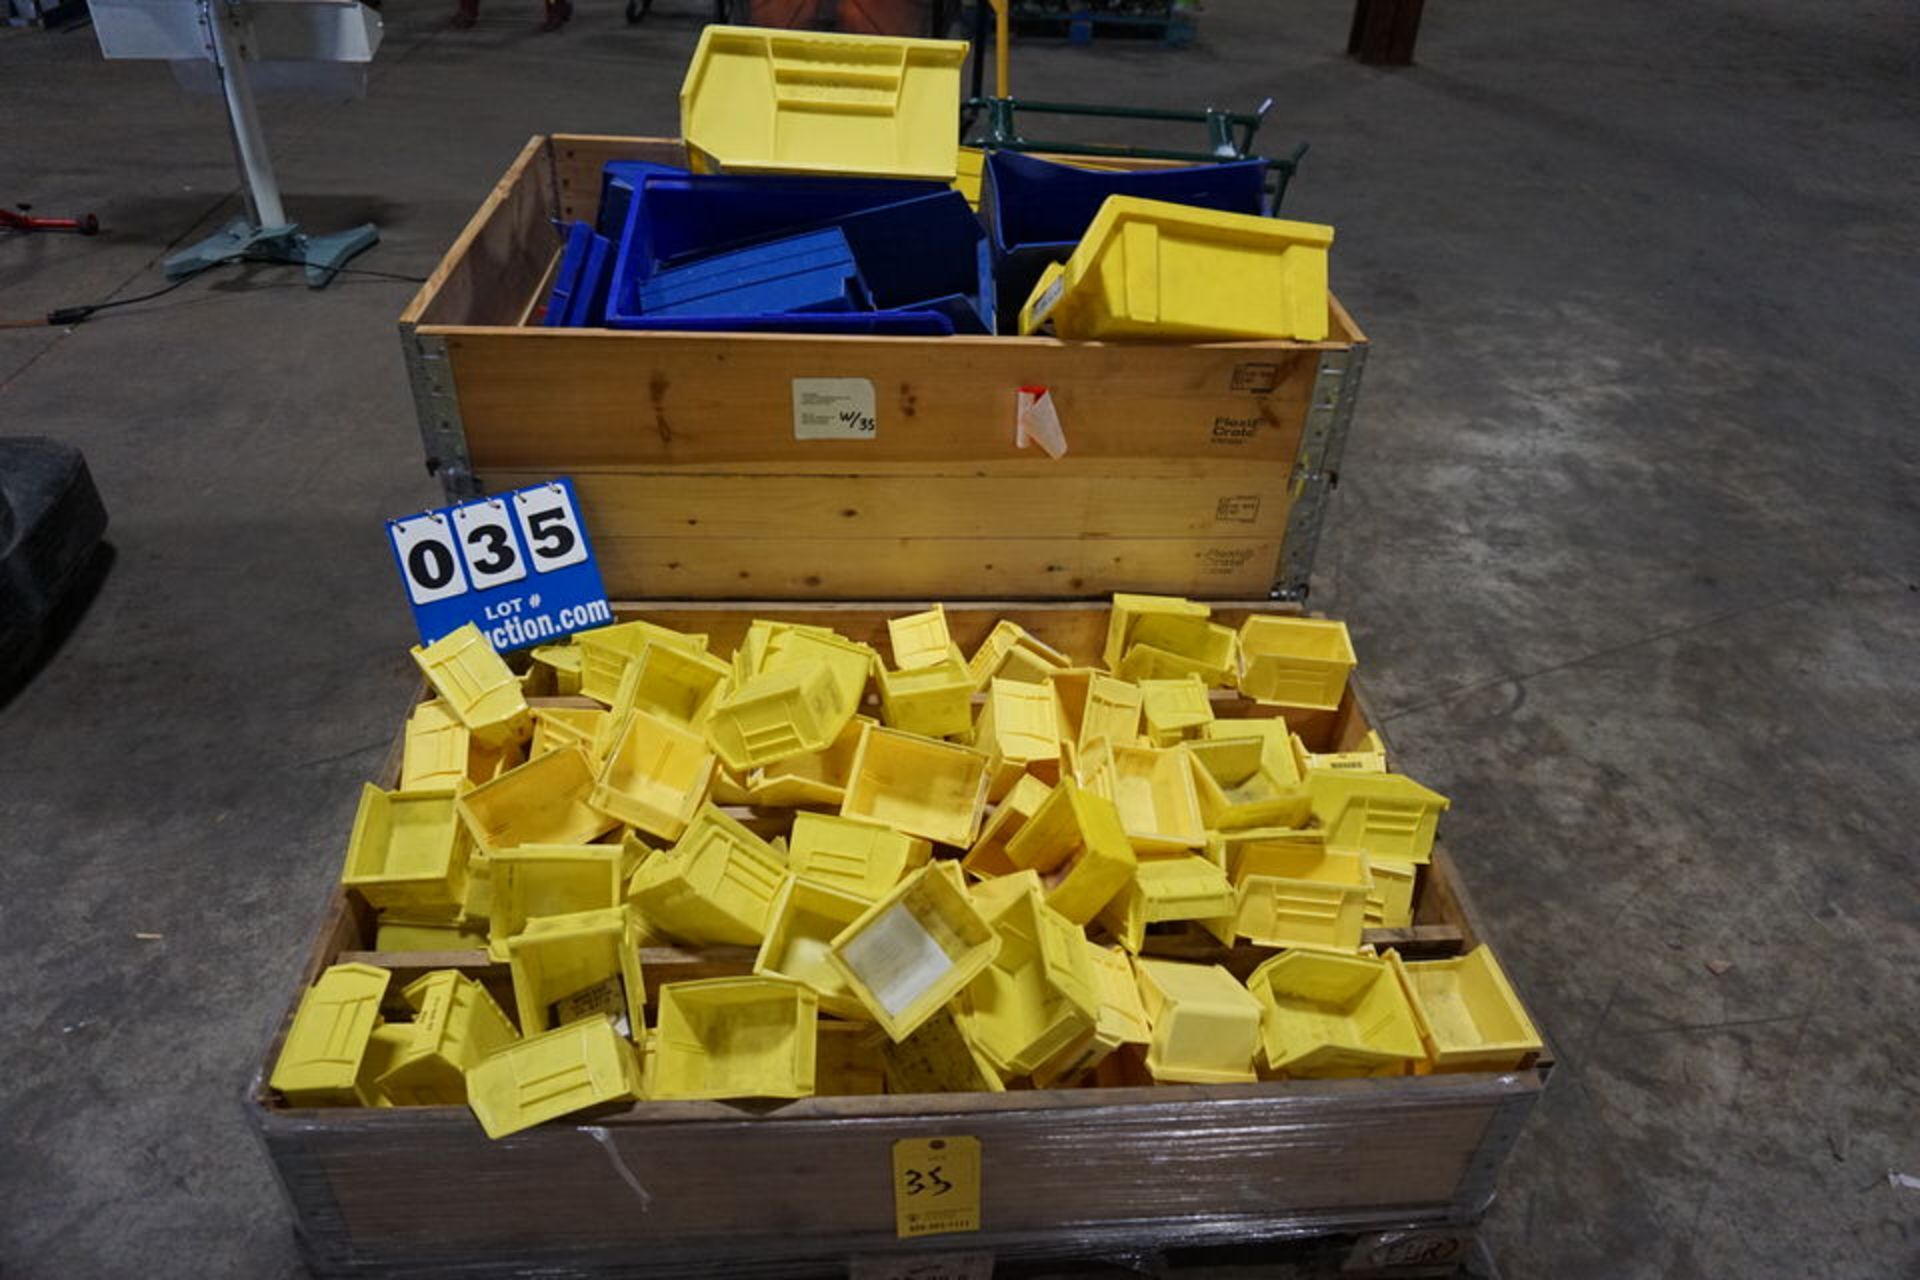 Lot 35 - APPROX 150 PLASTIC STORAGE BINS (Location: 903 Blue Starr, Claremore, OK 74017)